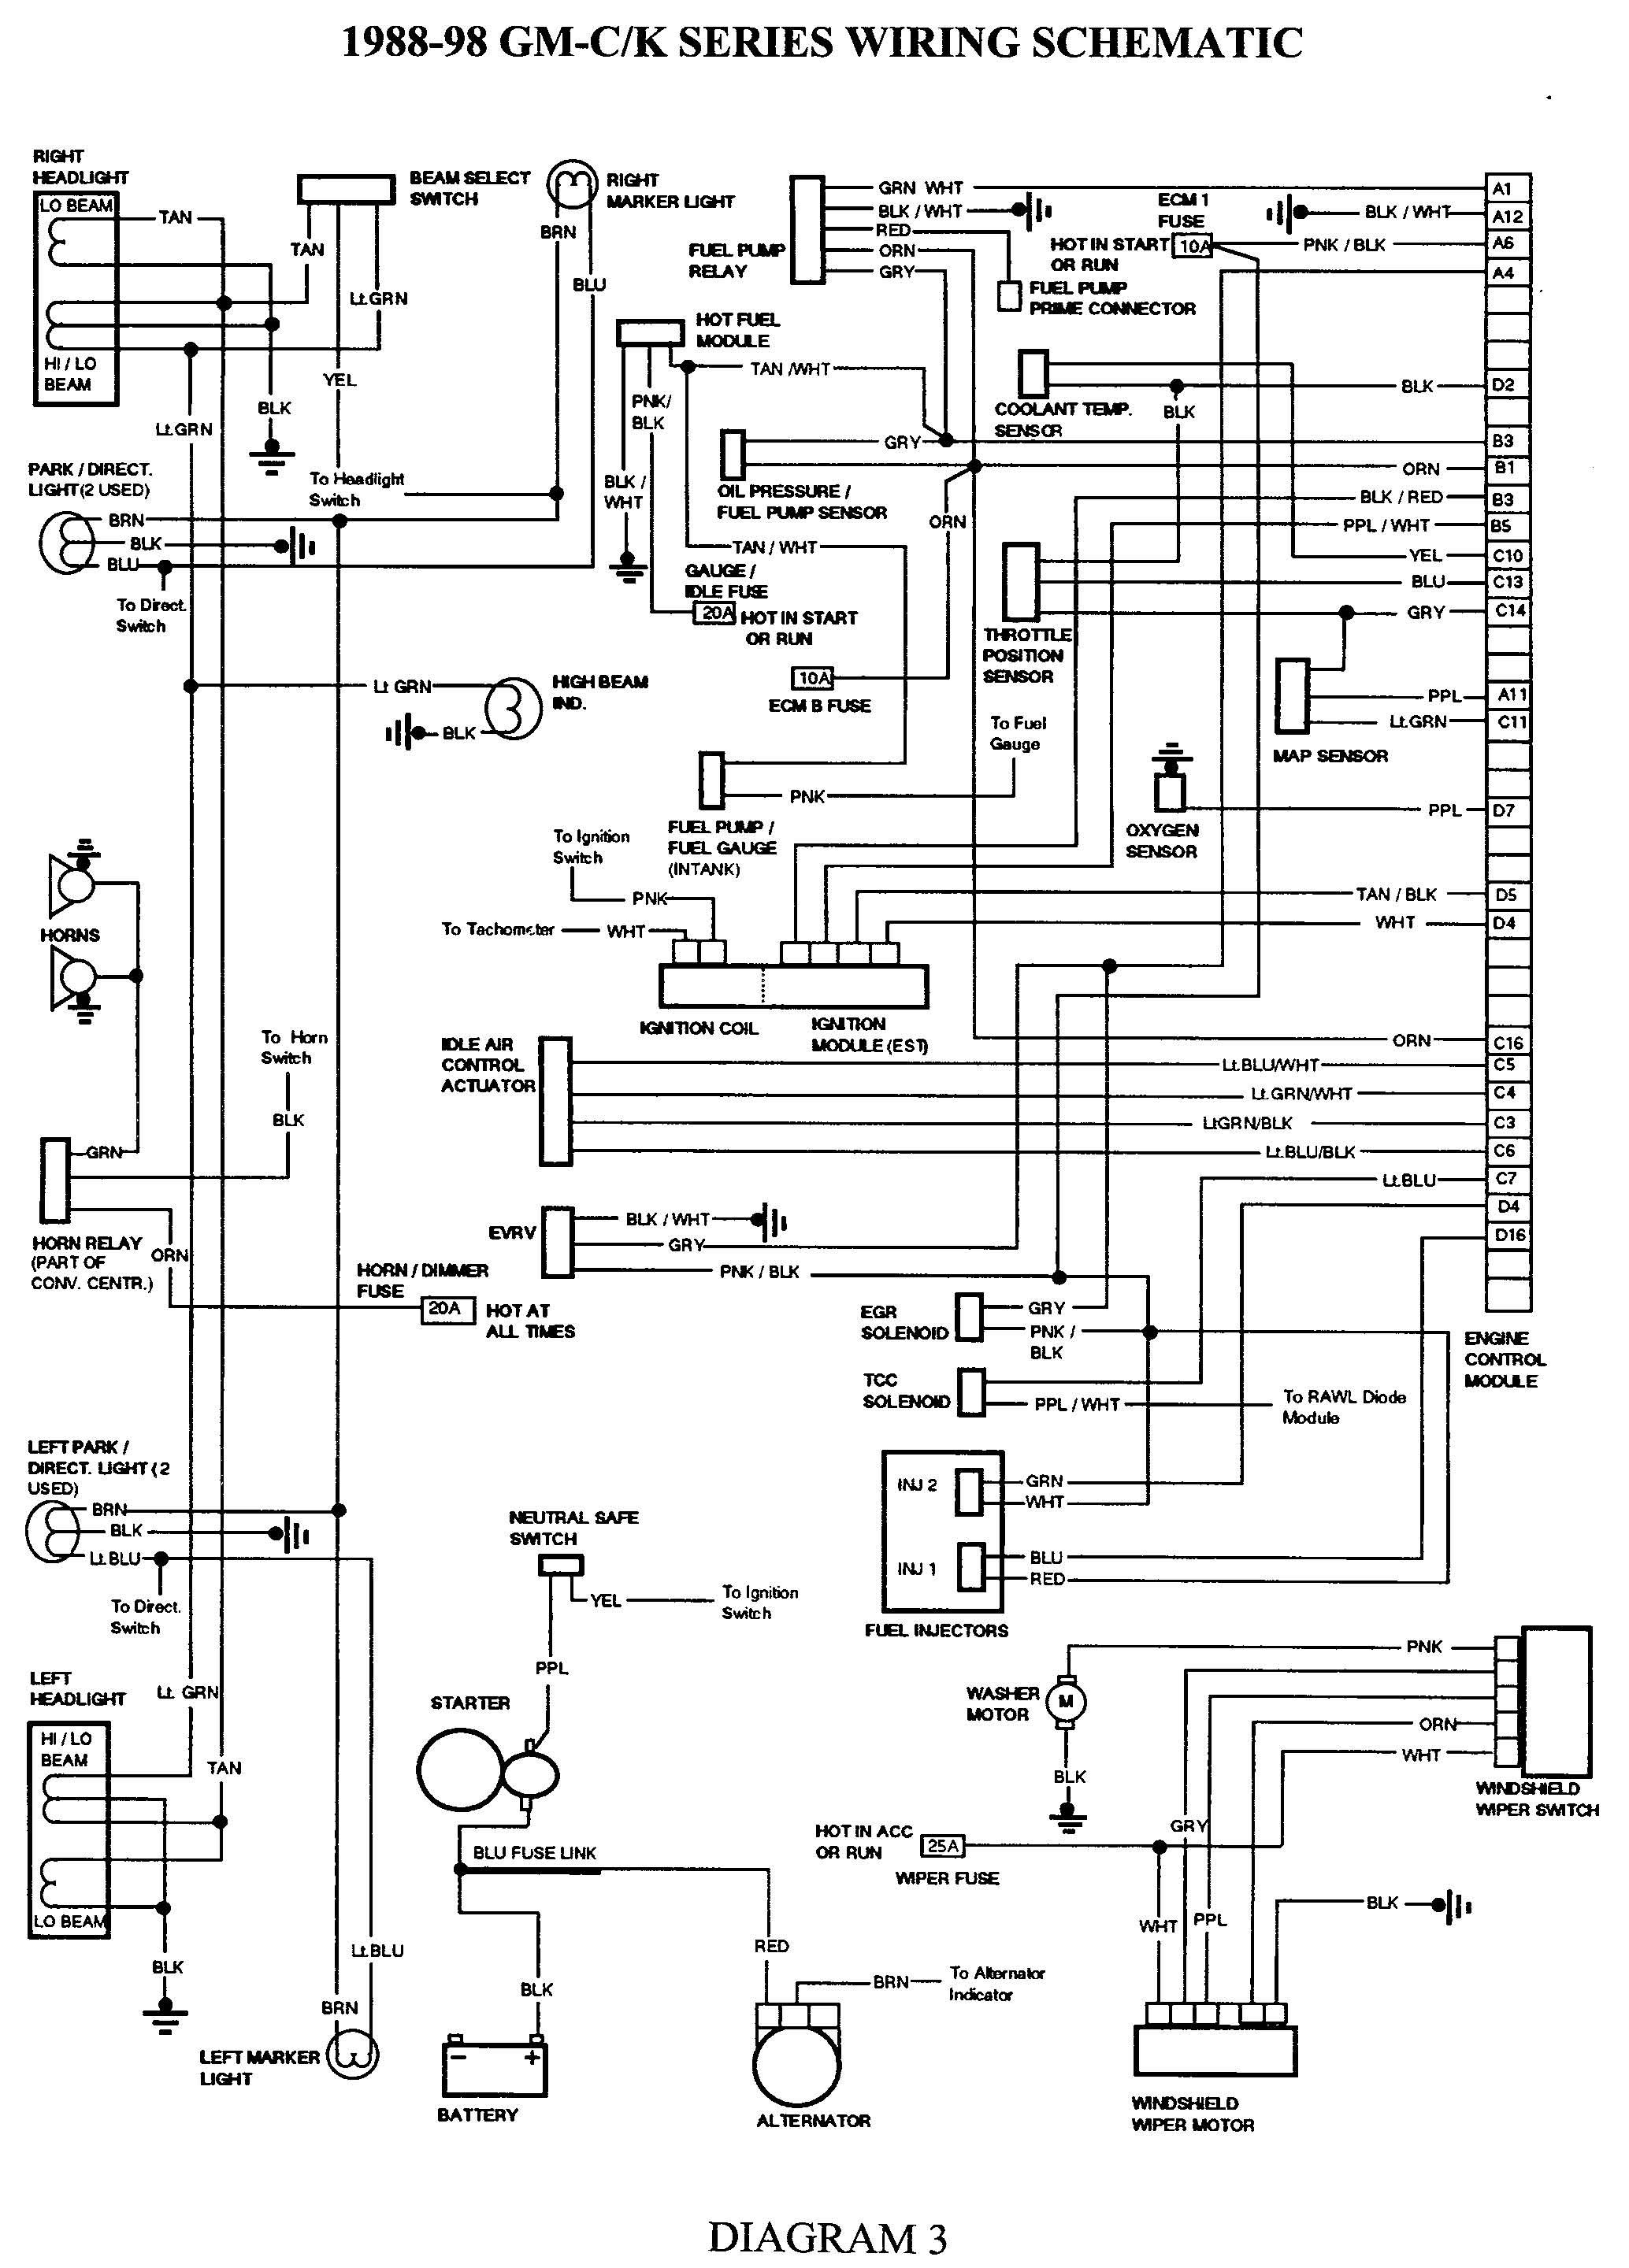 Wiring Diagram Additionally Isuzu Npr Wiring Diagram On Model A Ford